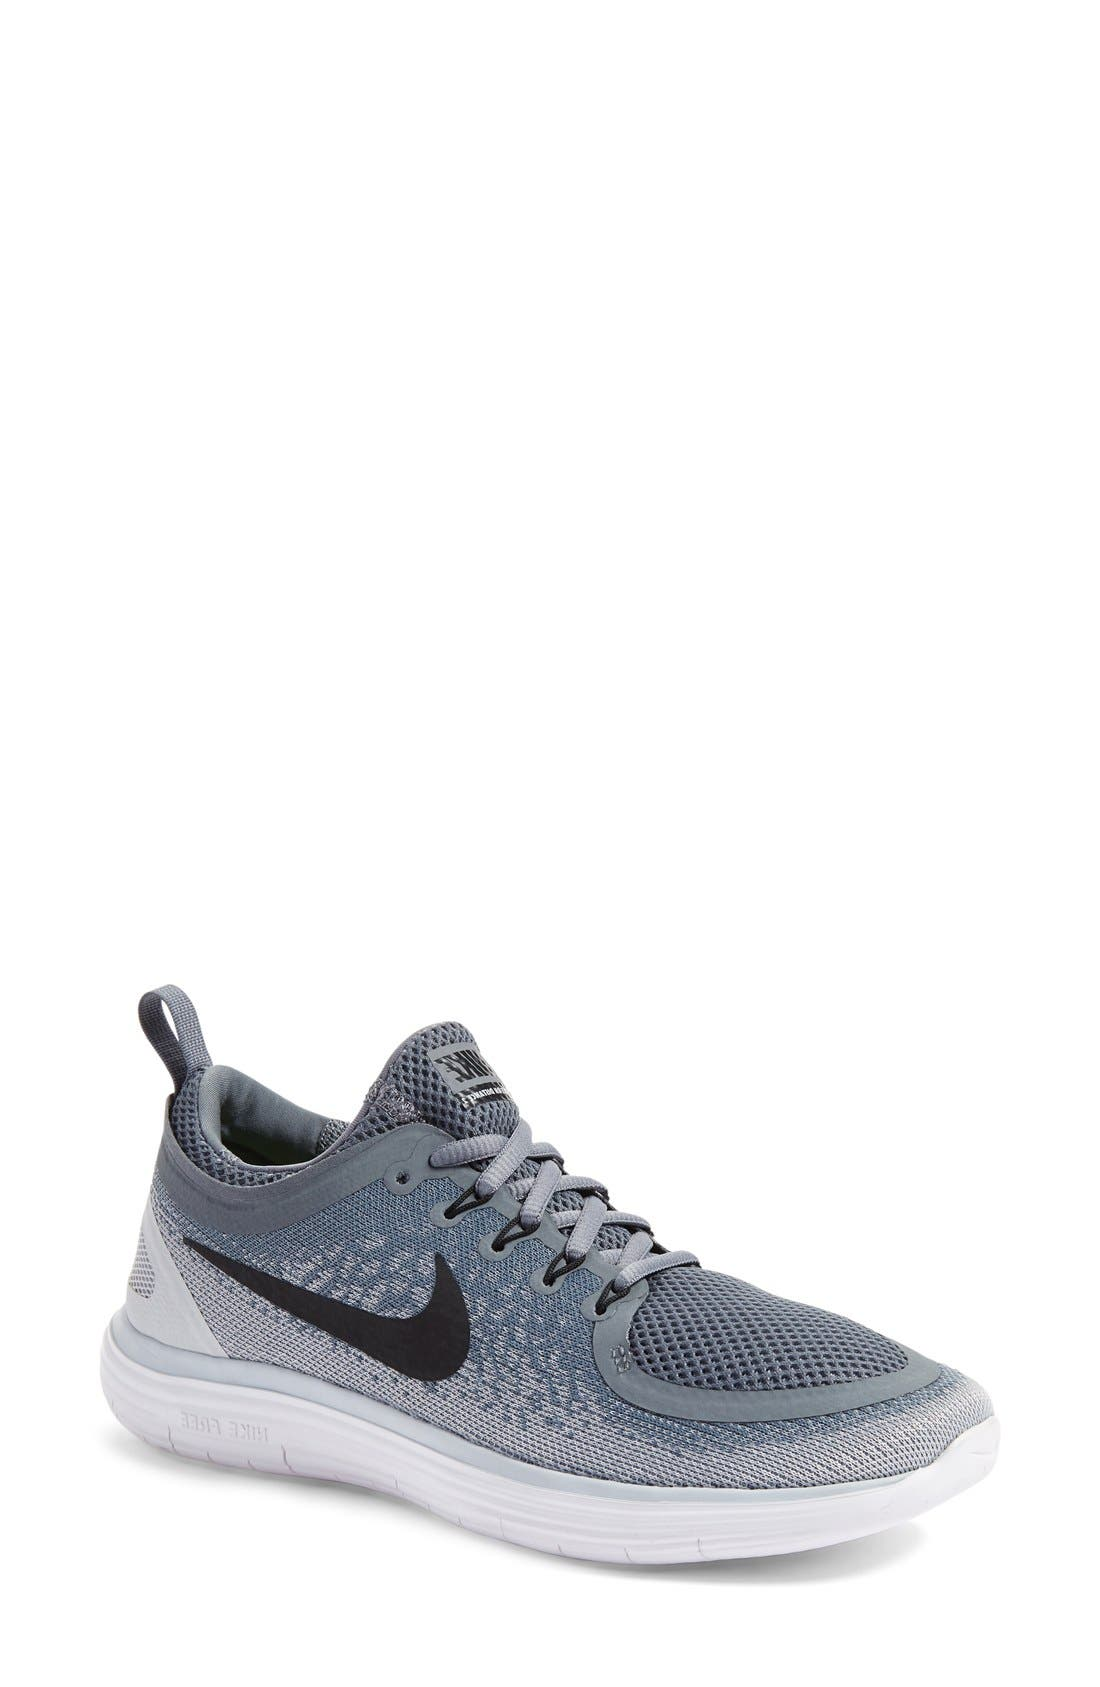 Nike Free Run Distance 2 Running Shoe (Women)